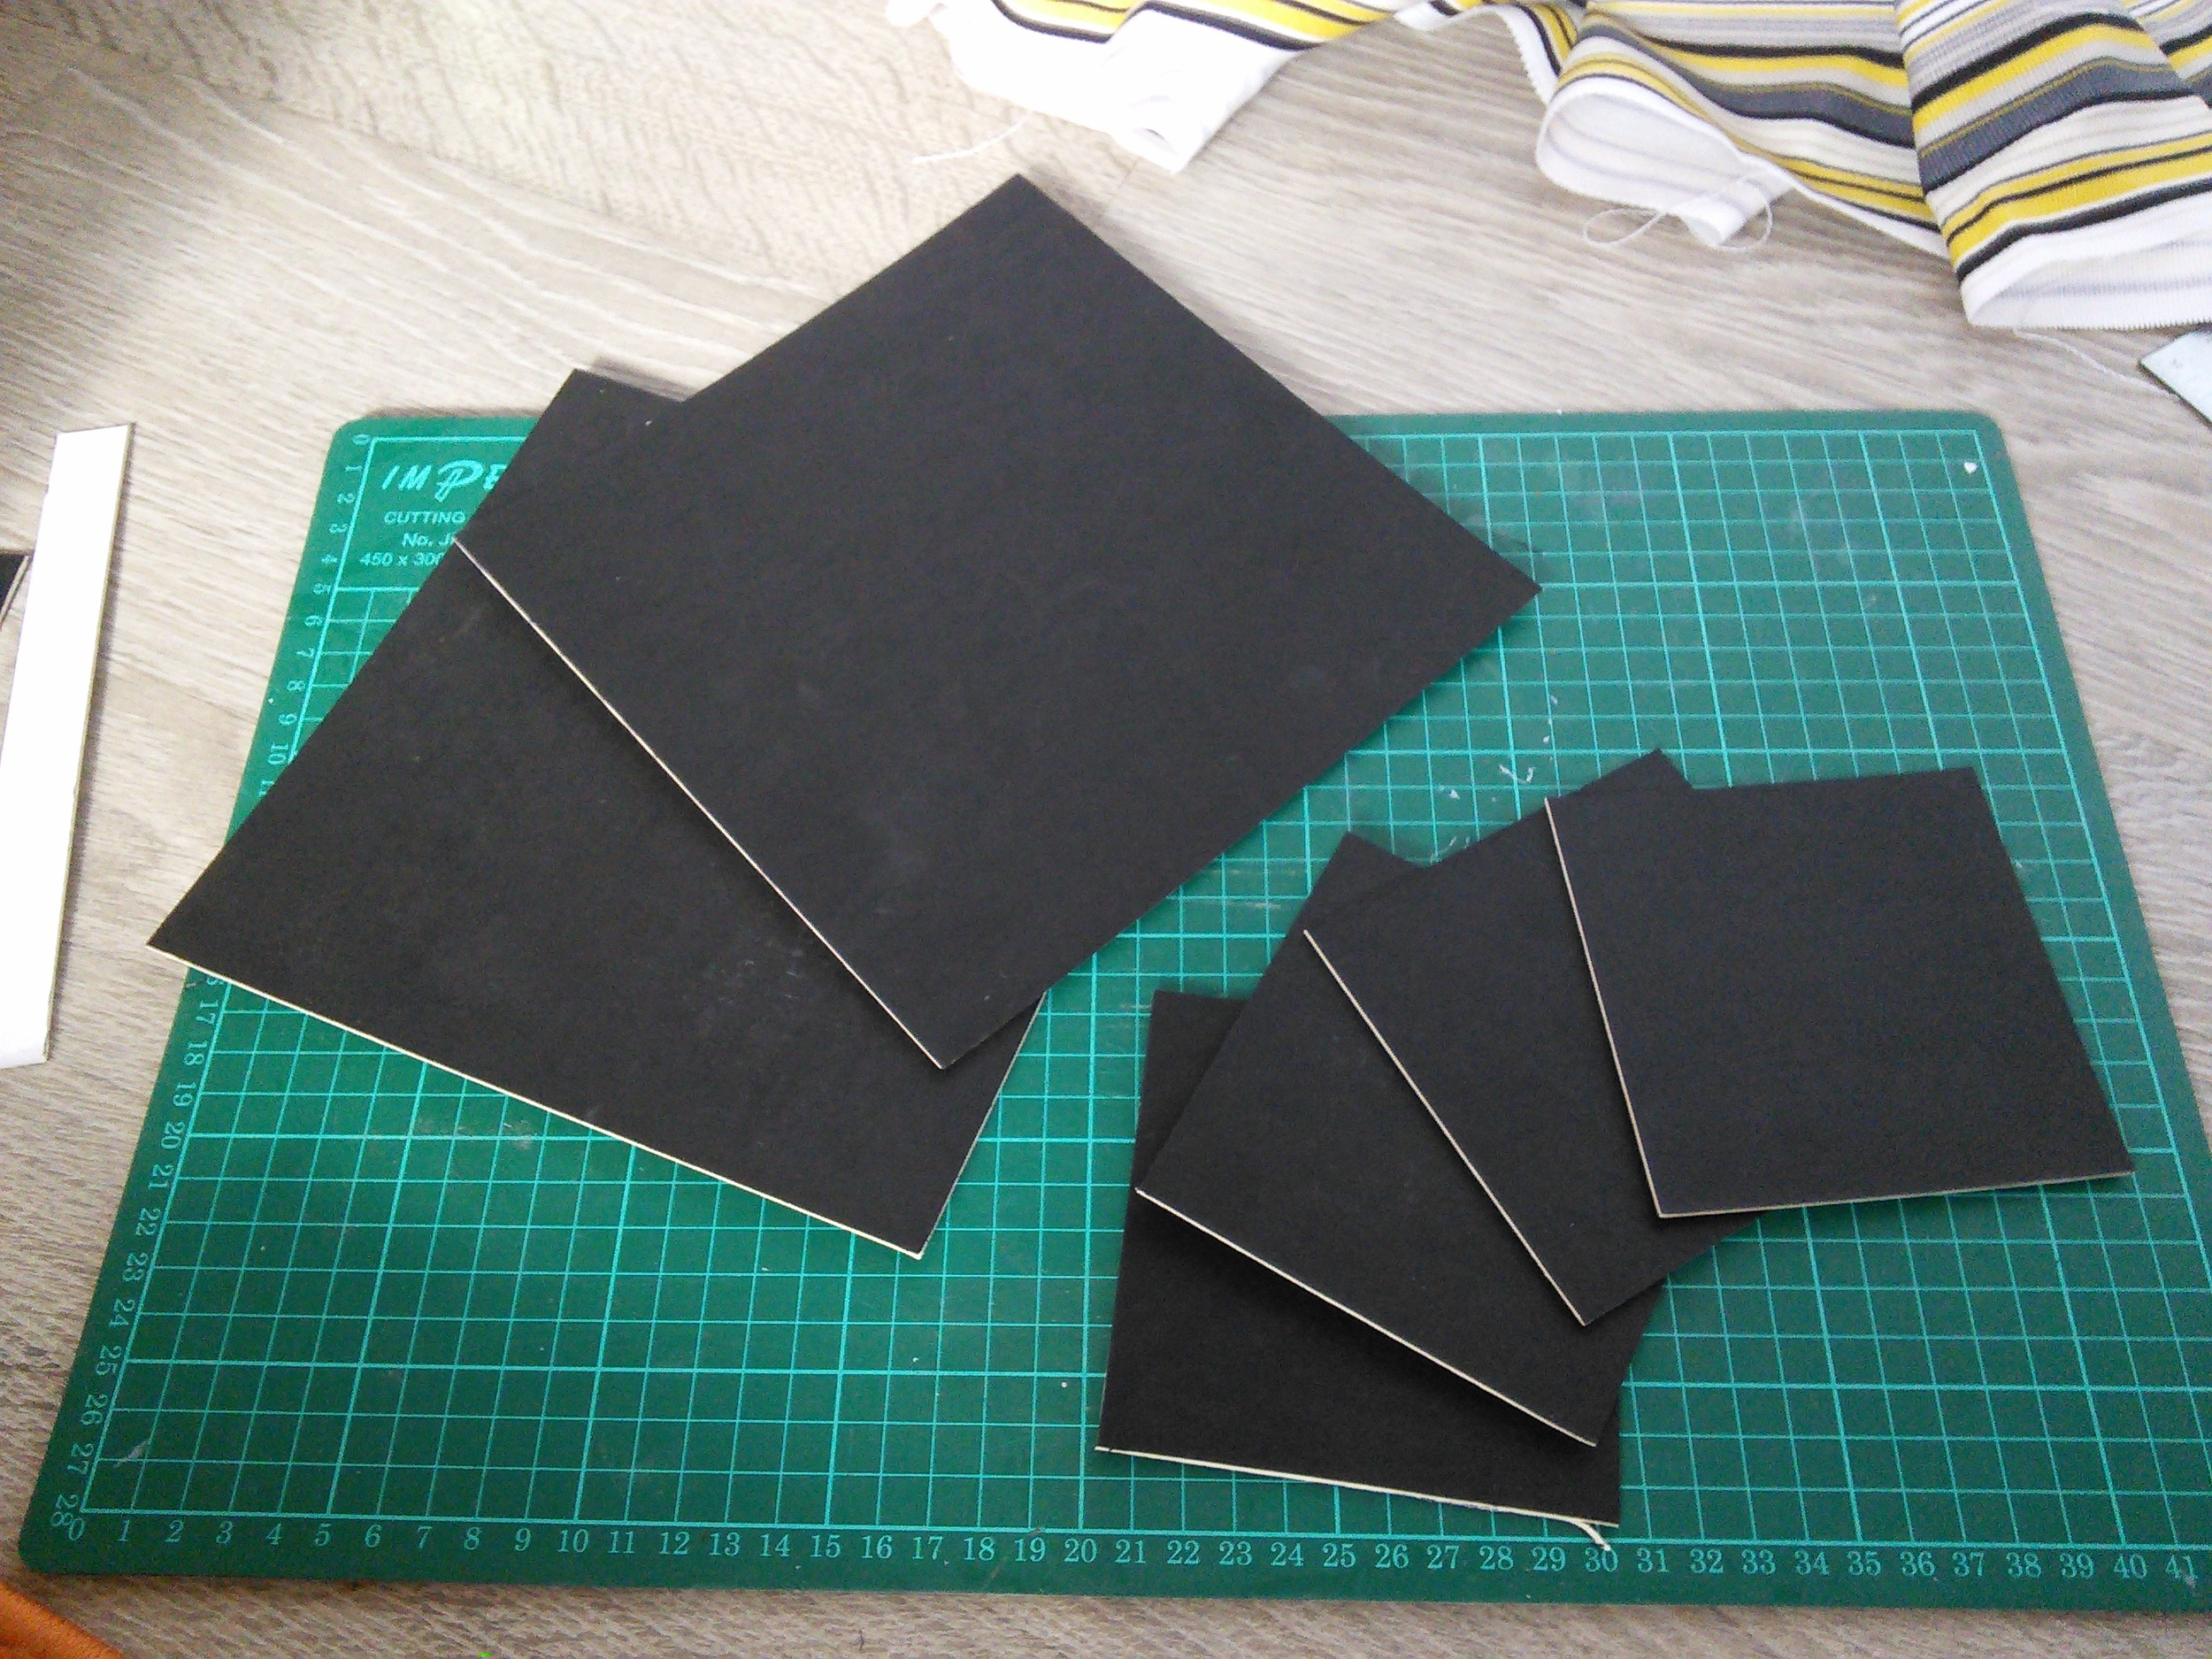 The colour of the mountboard is unimportant as it will be completely covered by fabric. However, I discovered that the dye in this dark card had a tendency to come off when the glue was applied. Not enough to be a problem, but enough for me to recommend using a light coloured card as your core.